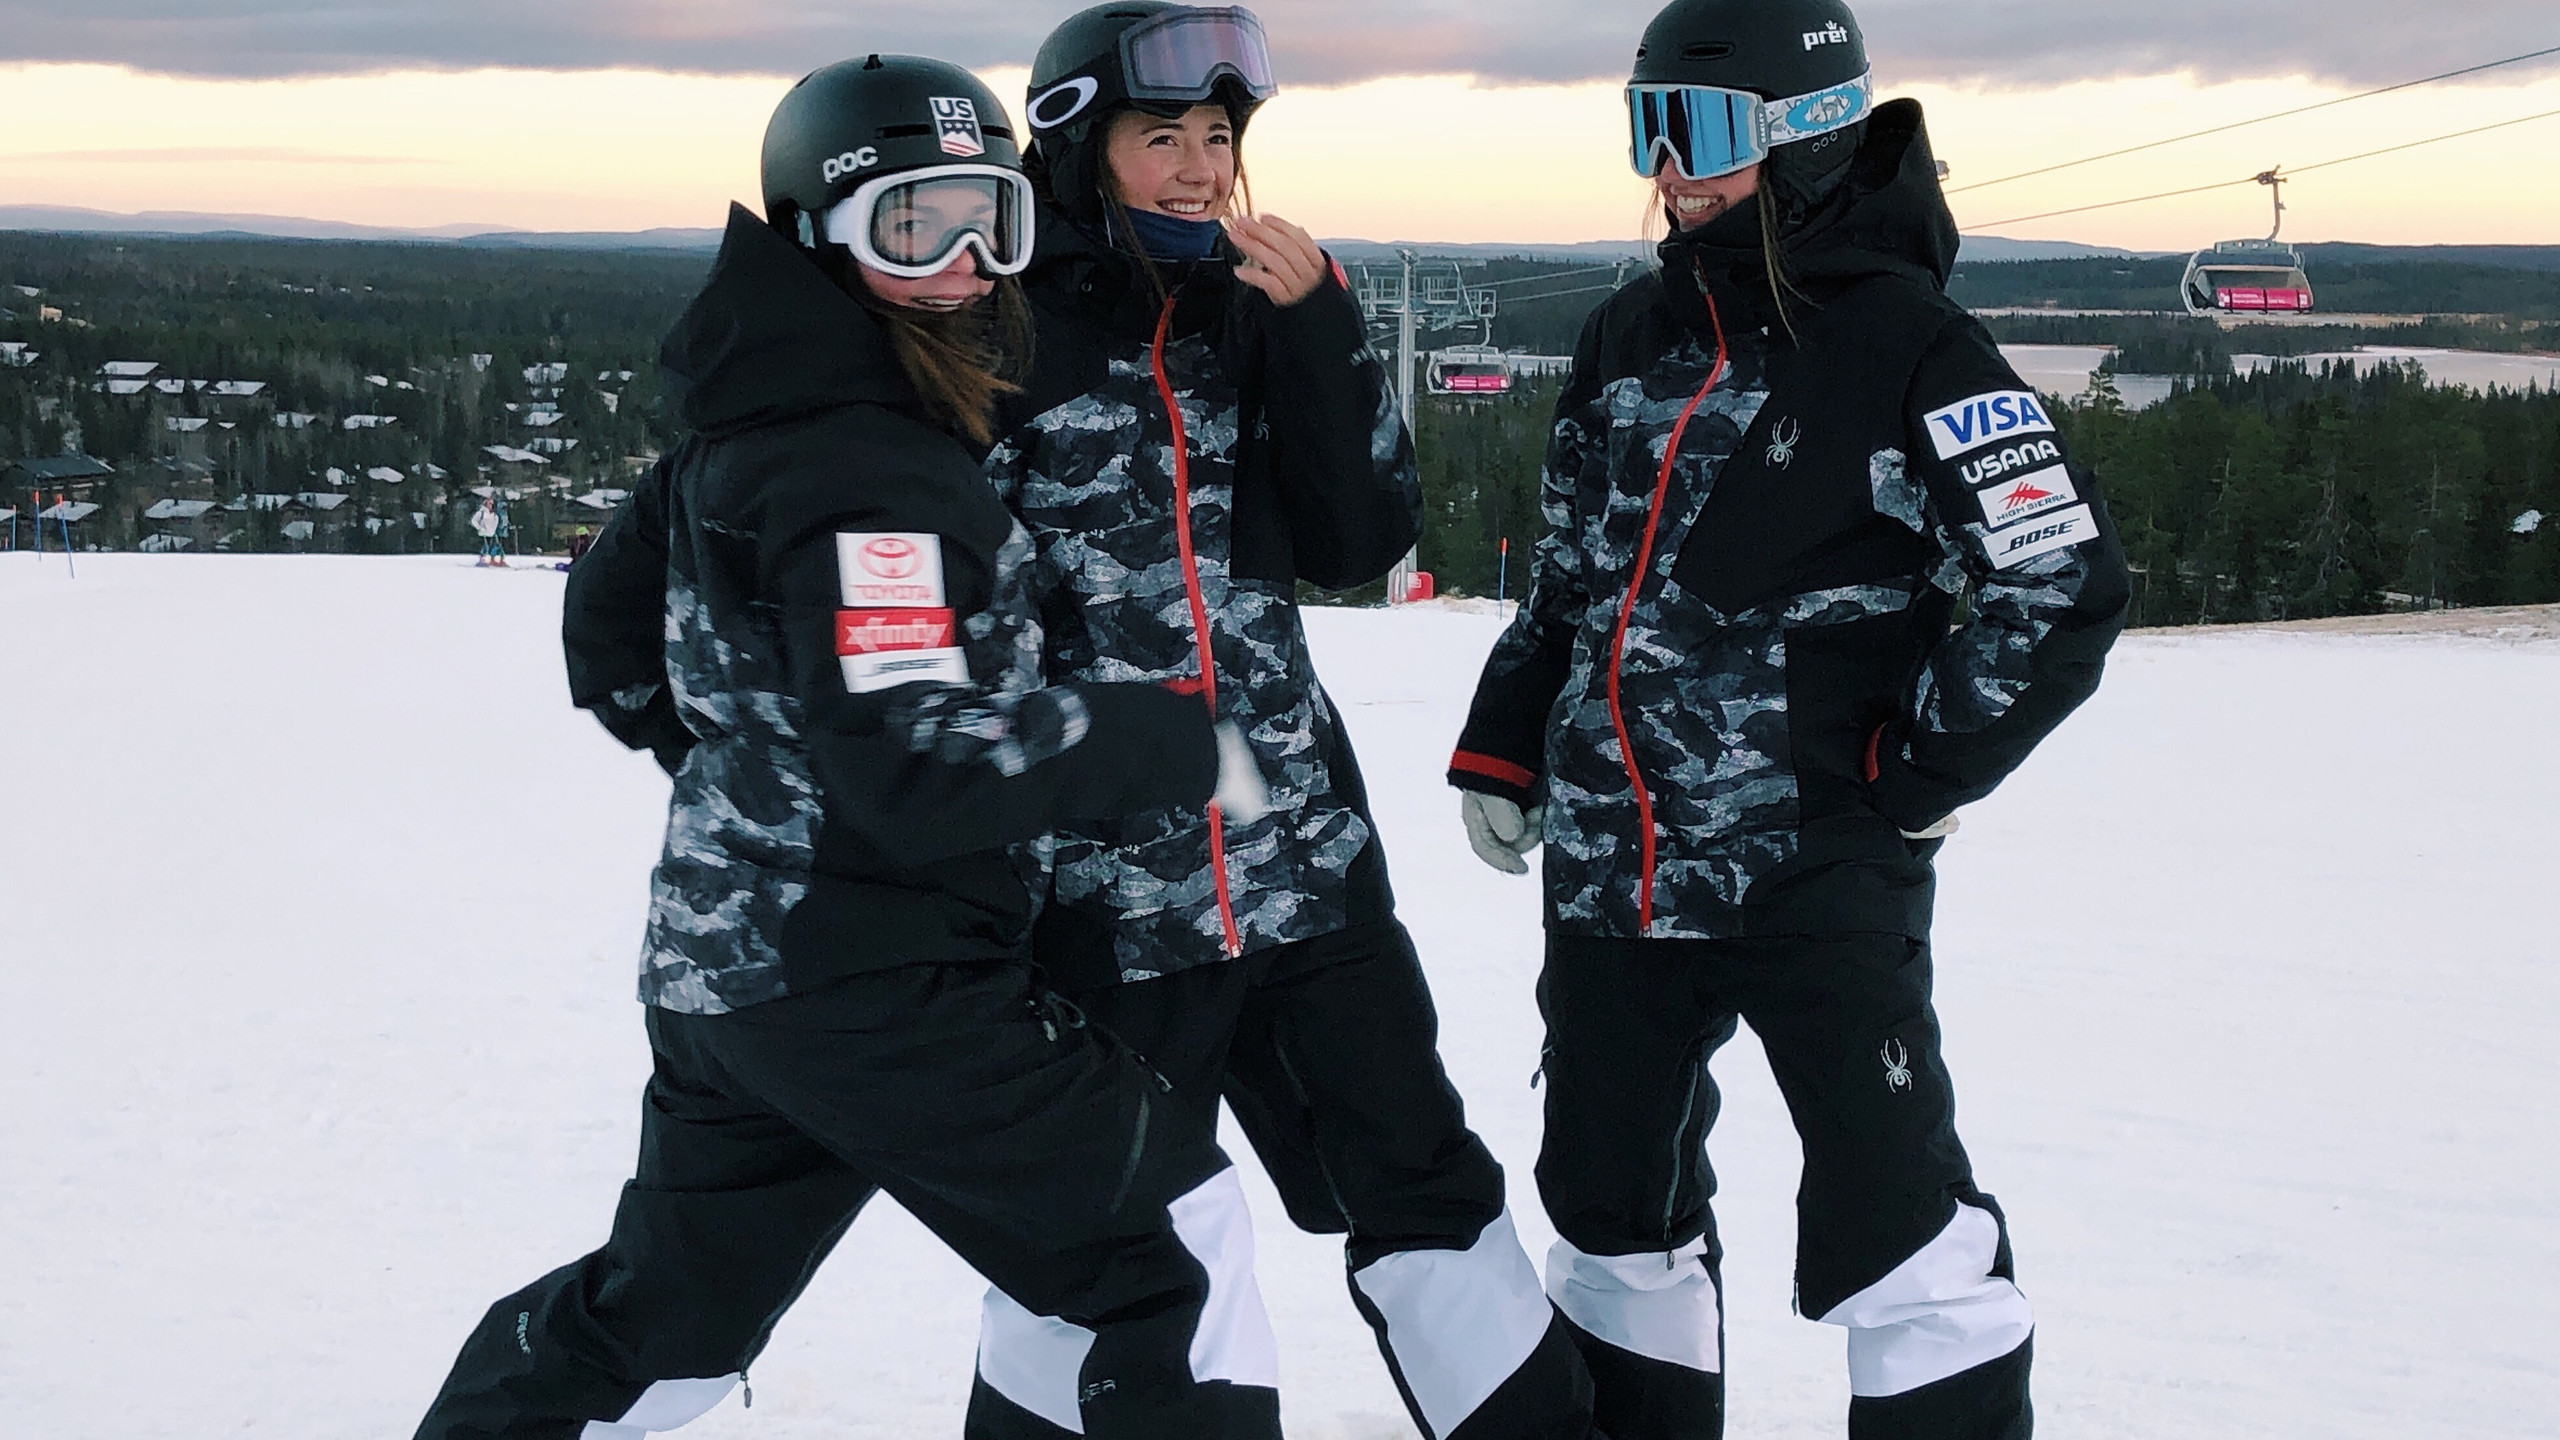 My Teammates and I in Finland